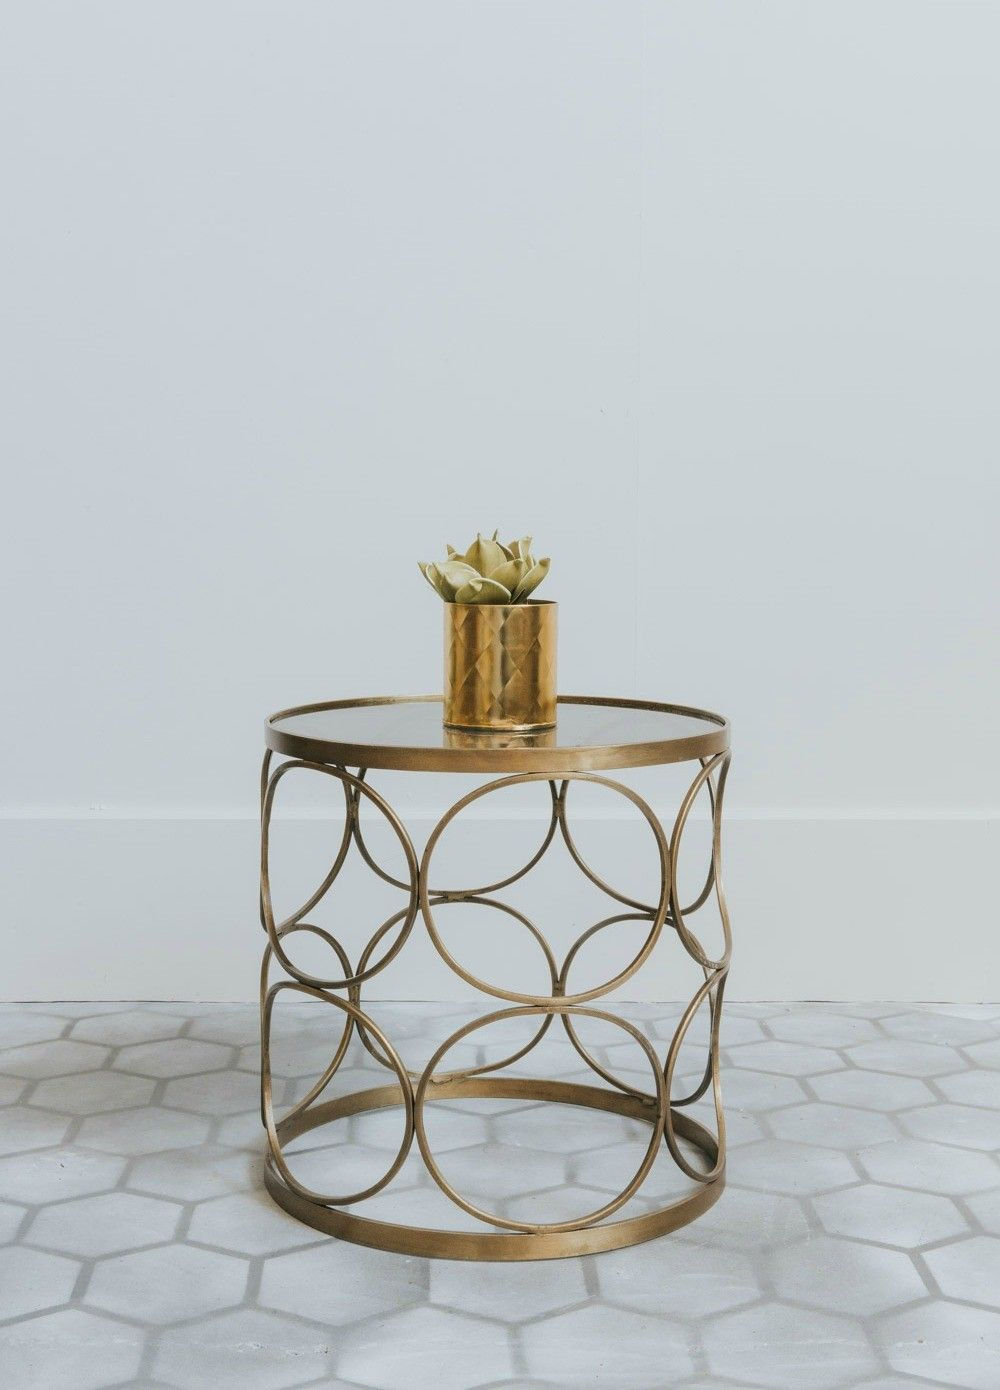 Wwwroseandgreycouk Cirqueblackglassbrasssidetable Marble - Black and brass side table